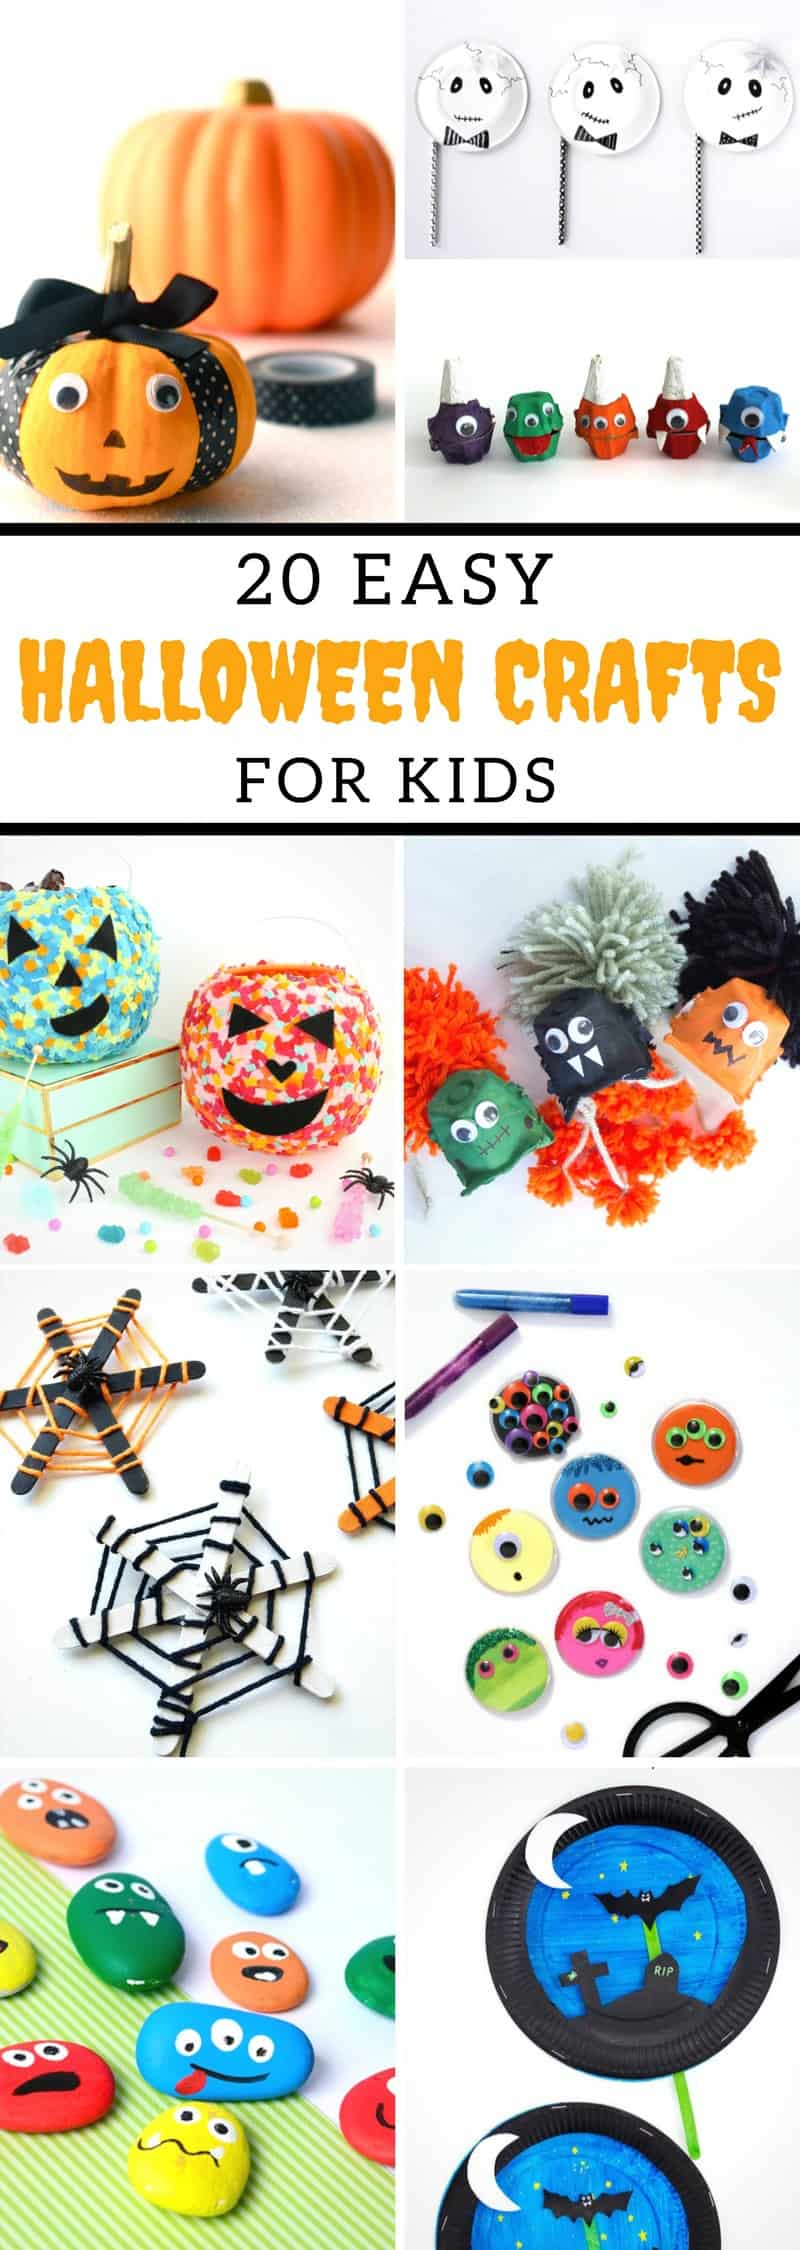 Easy Halloween Crafts For Kids - 5 Minutes for Mom